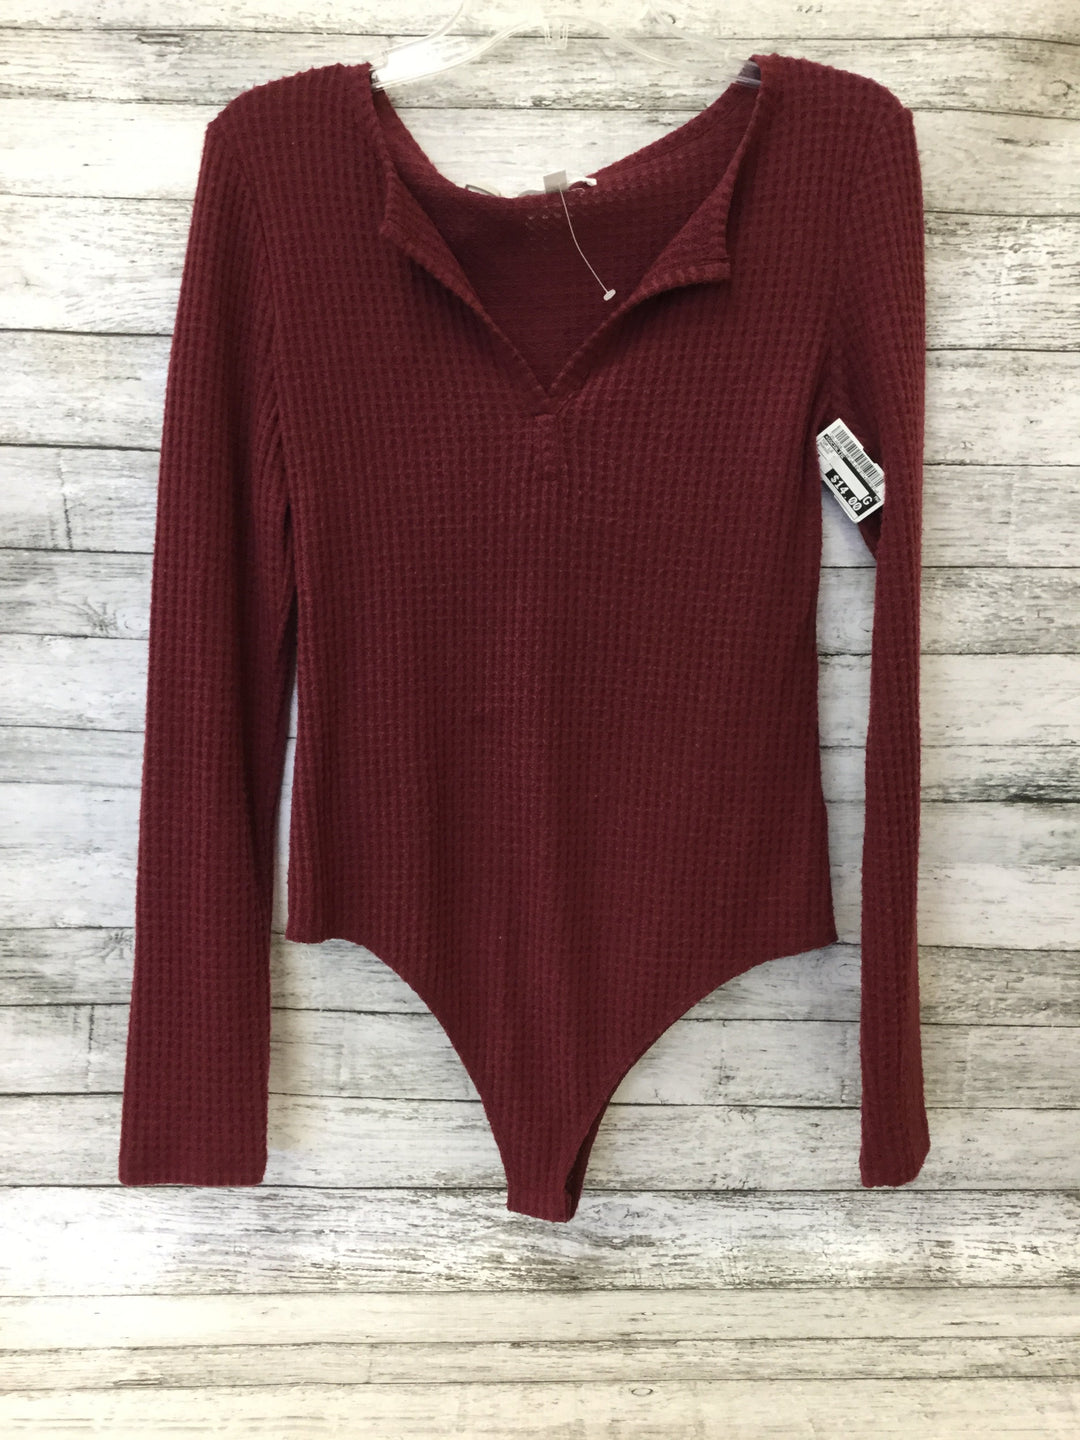 Primary Photo - brand: socialite , style: top long sleeve , color: maroon , size: m , sku: 125-4628-11987